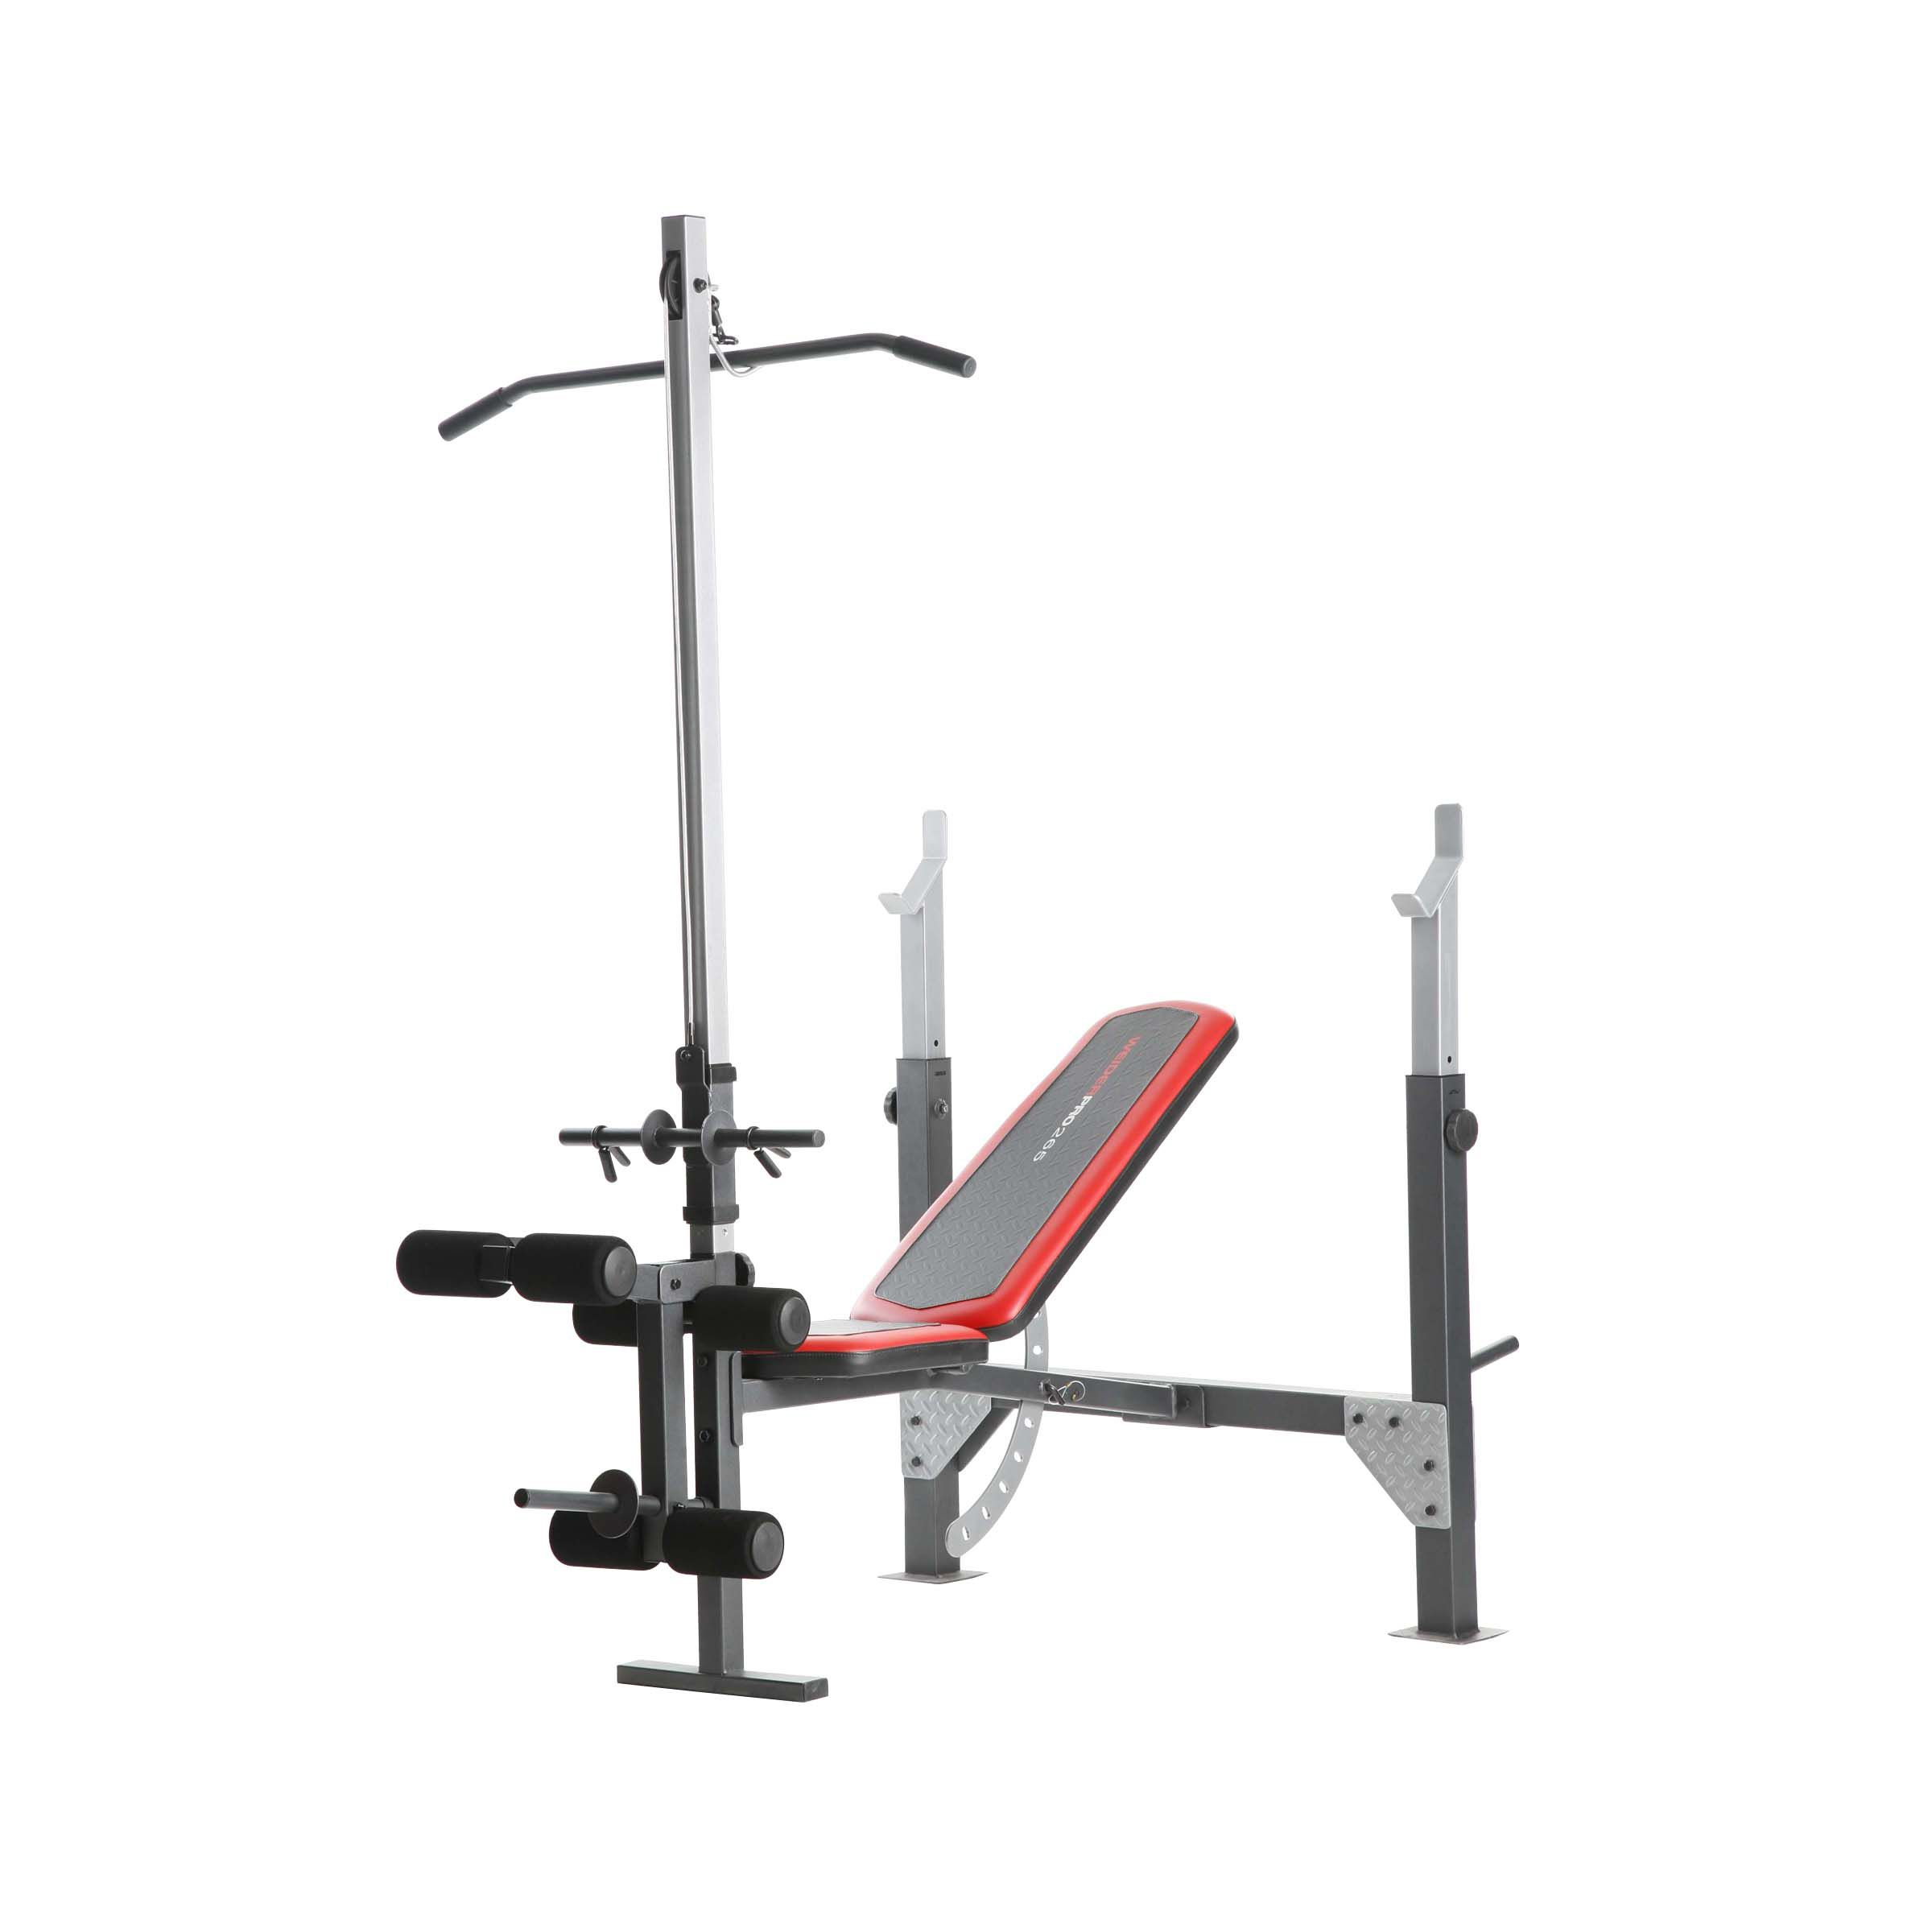 Weider Pro 4950 Pro 4950 Weight System Sears Outlet